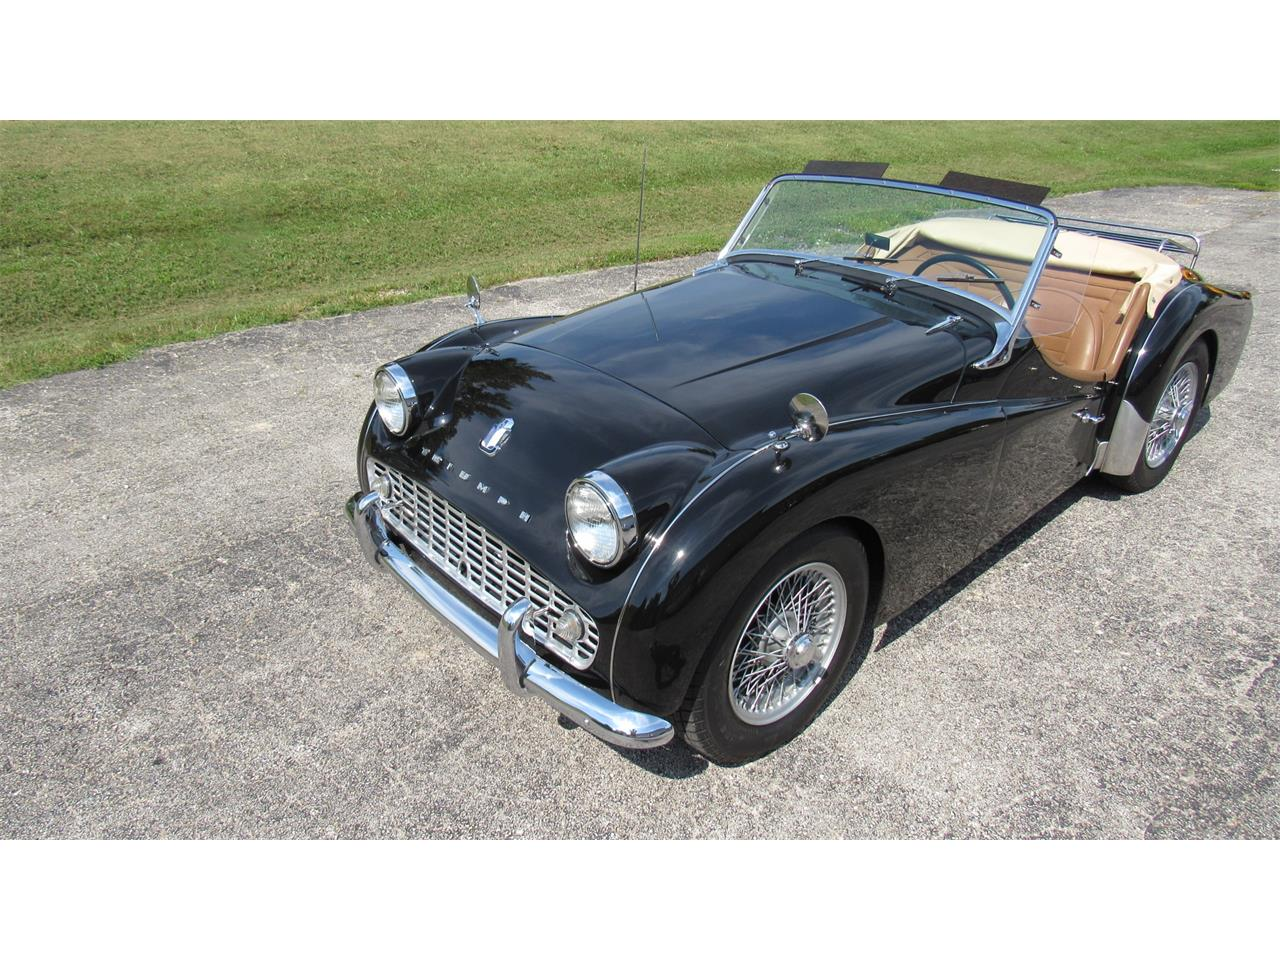 Large Picture of Classic 1959 Triumph TR3A located in WASHINGTON Missouri Offered by Wilson Motor Company - QOZP